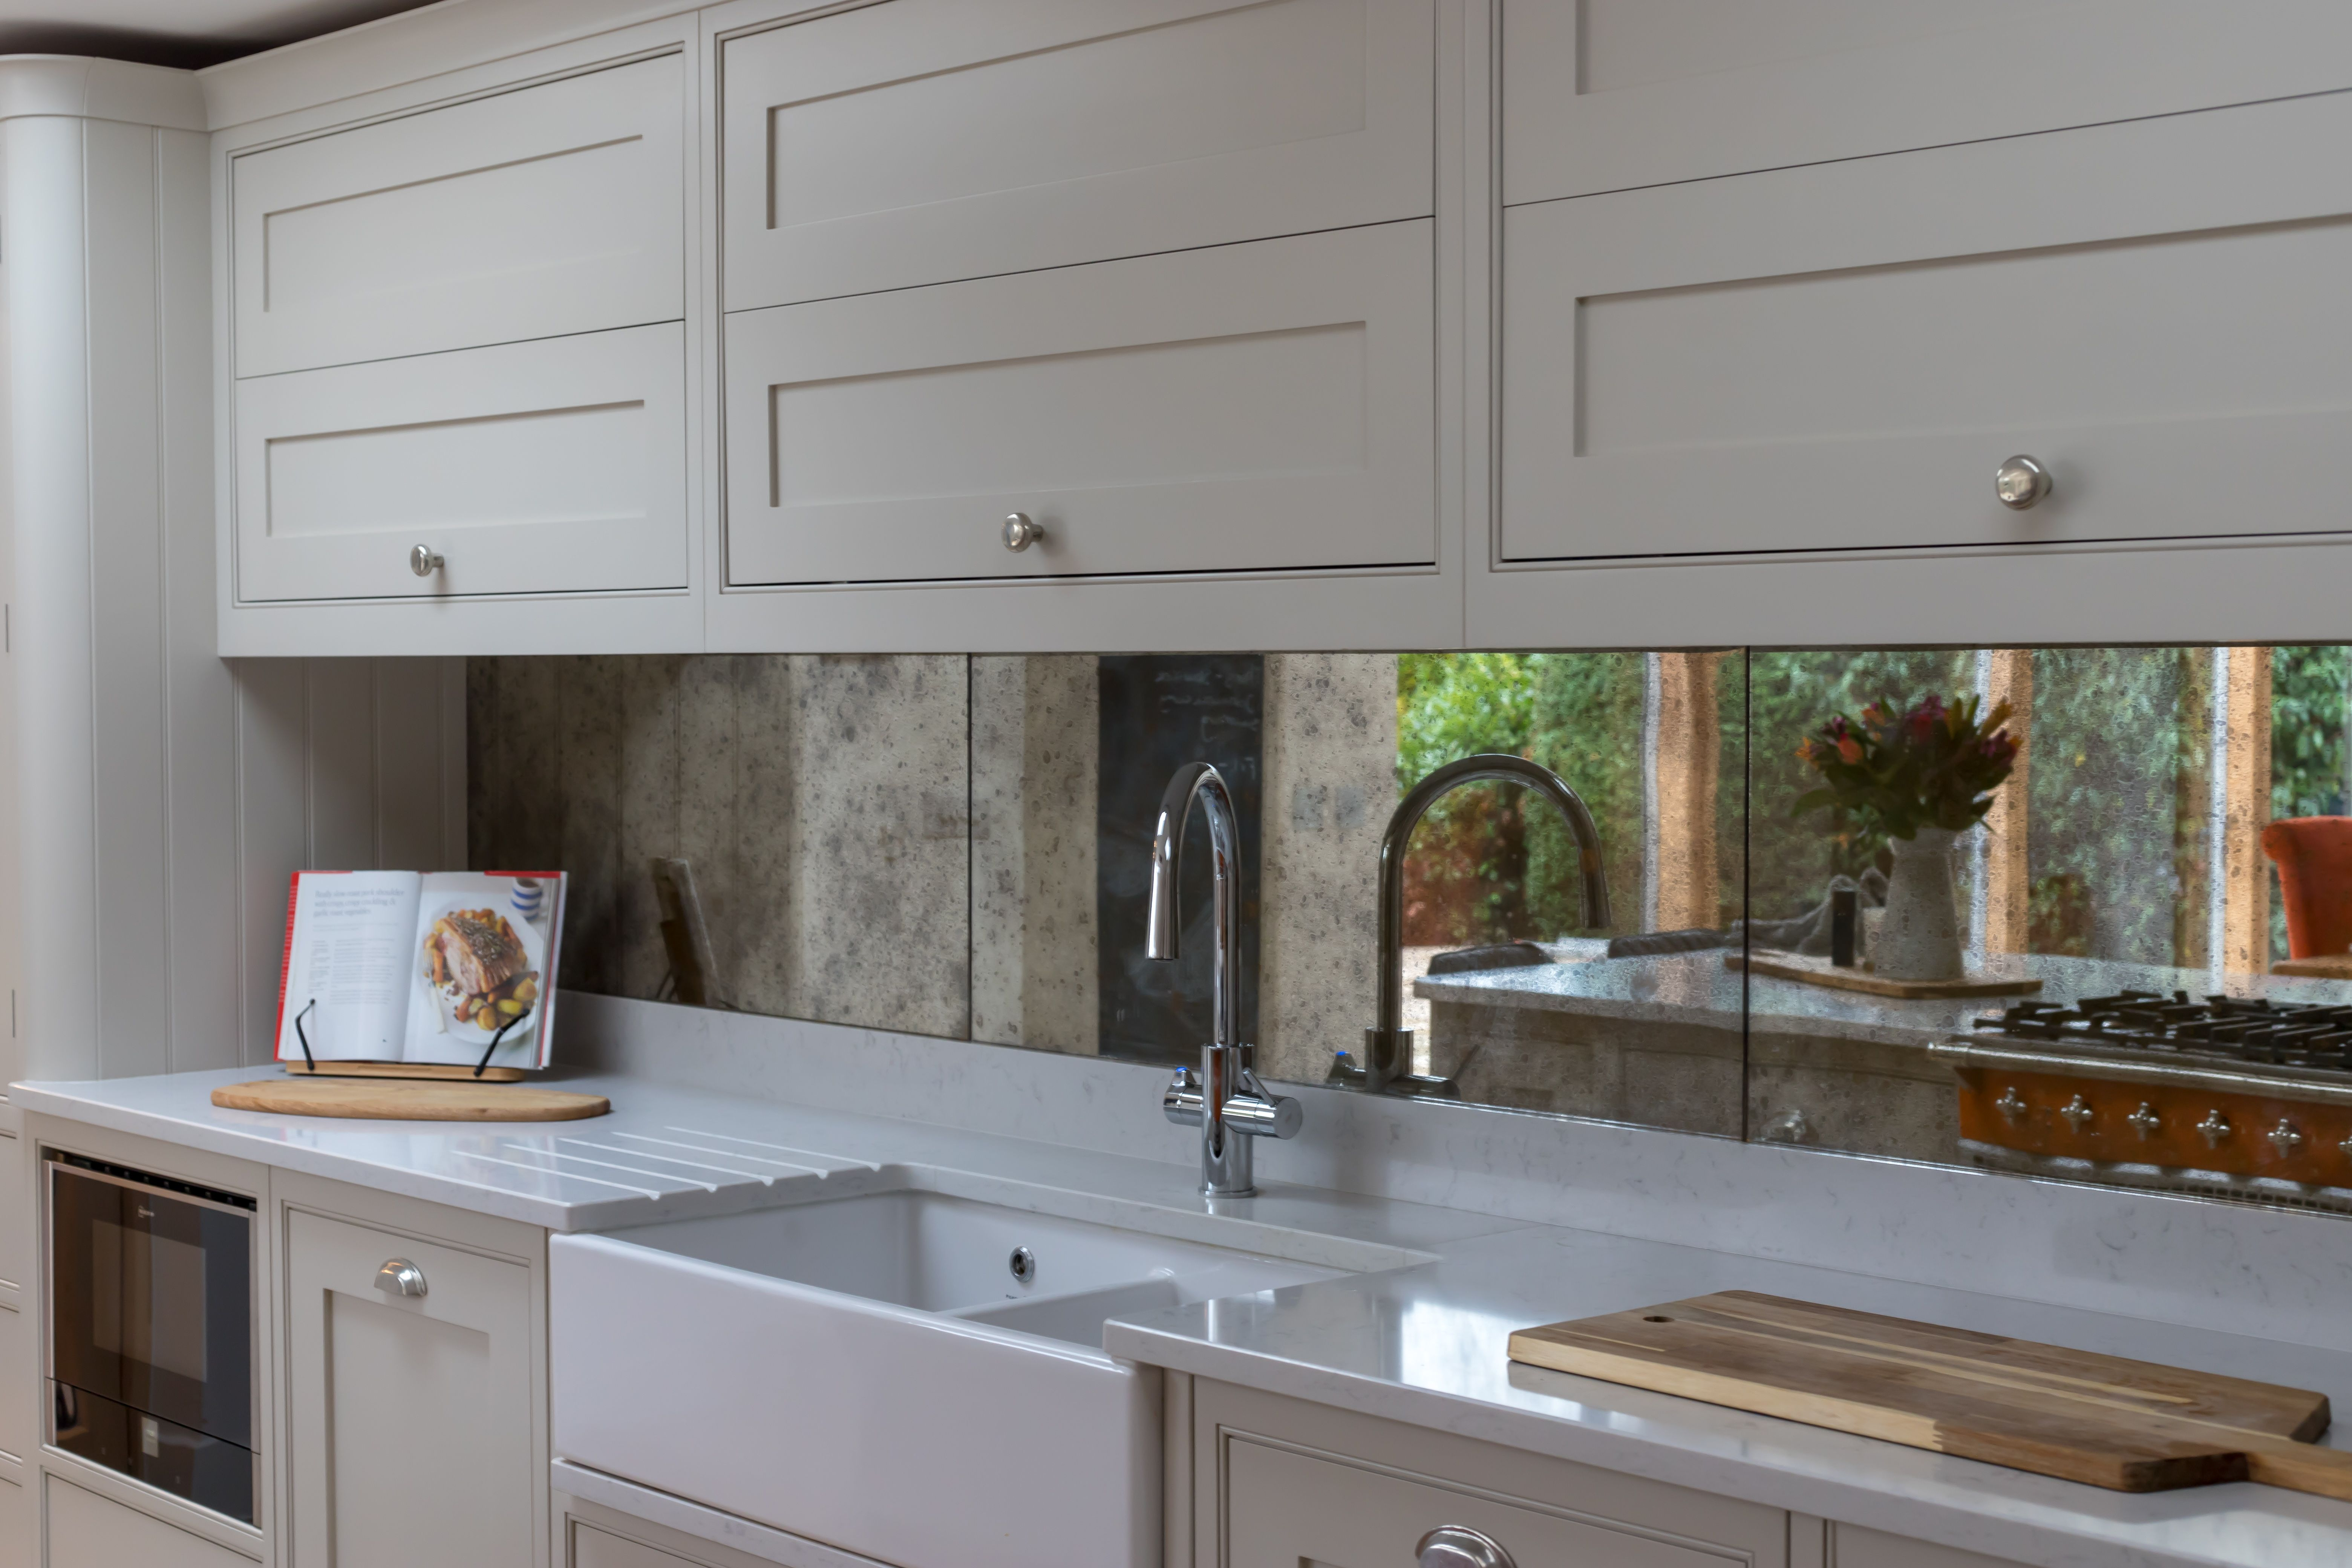 An Antiqued Mirror Distressed Splashback Like This Will Make A